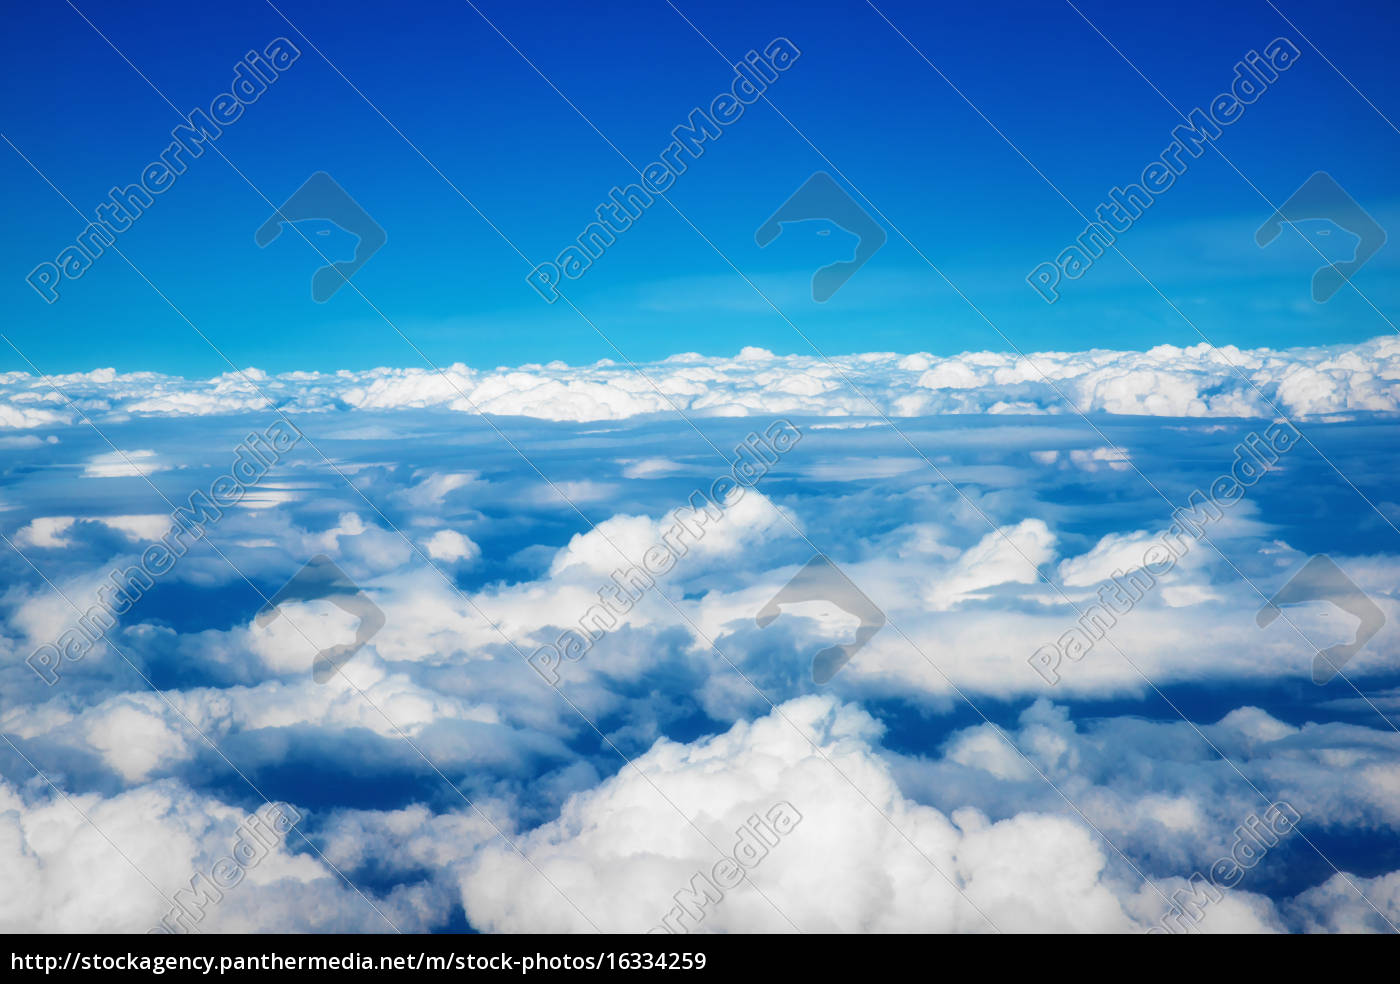 over, the, clouds - 16334259